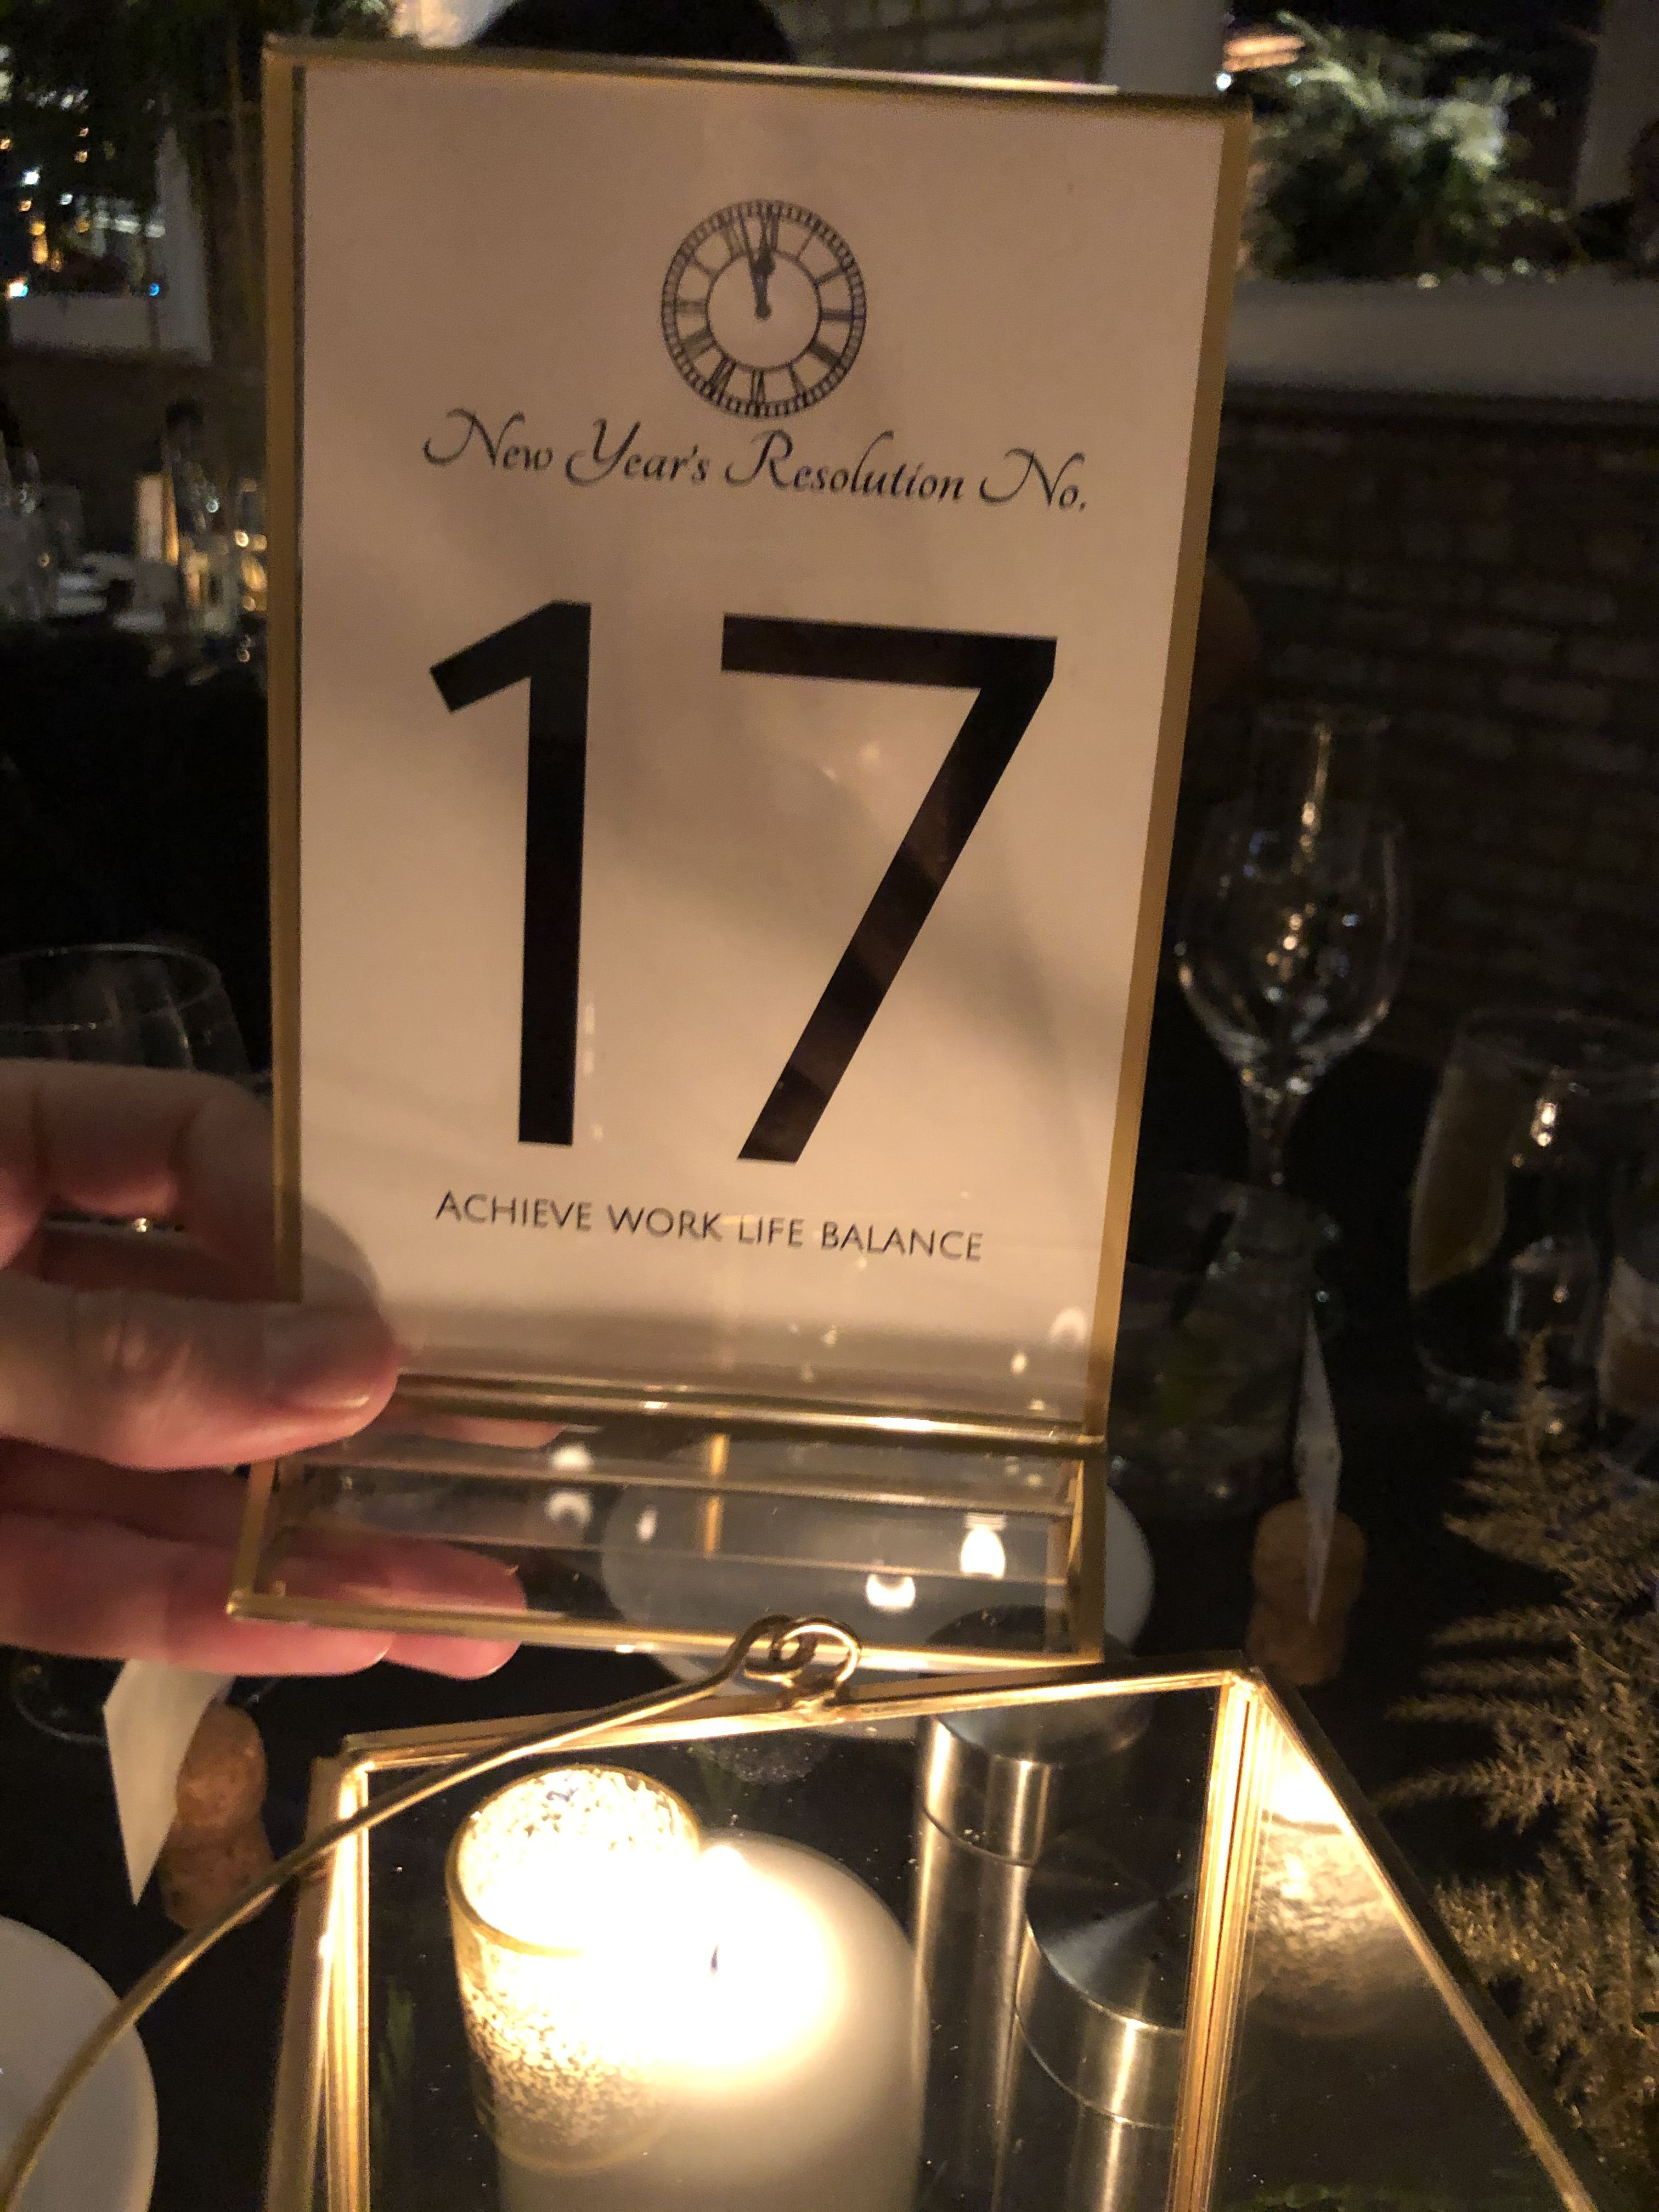 New Year's Resolution Table Numbers in 2020 (With images